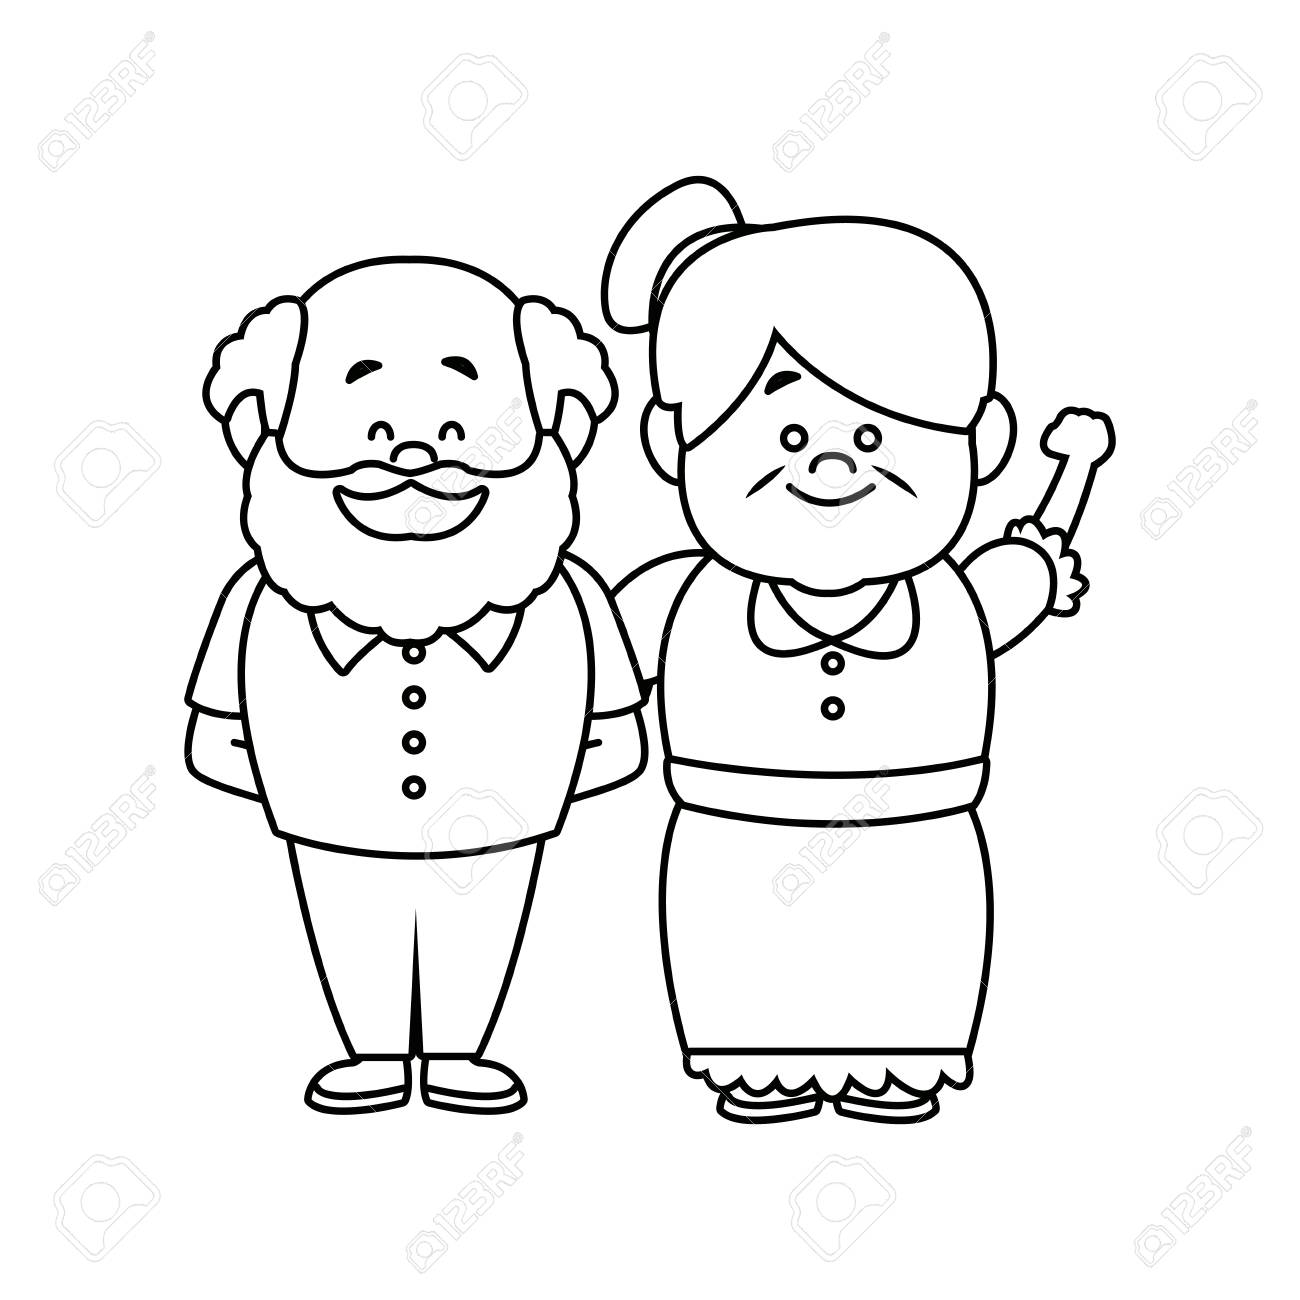 hight resolution of happy grandpa and grandma parents standing together vecto illustration stock vector 82261992